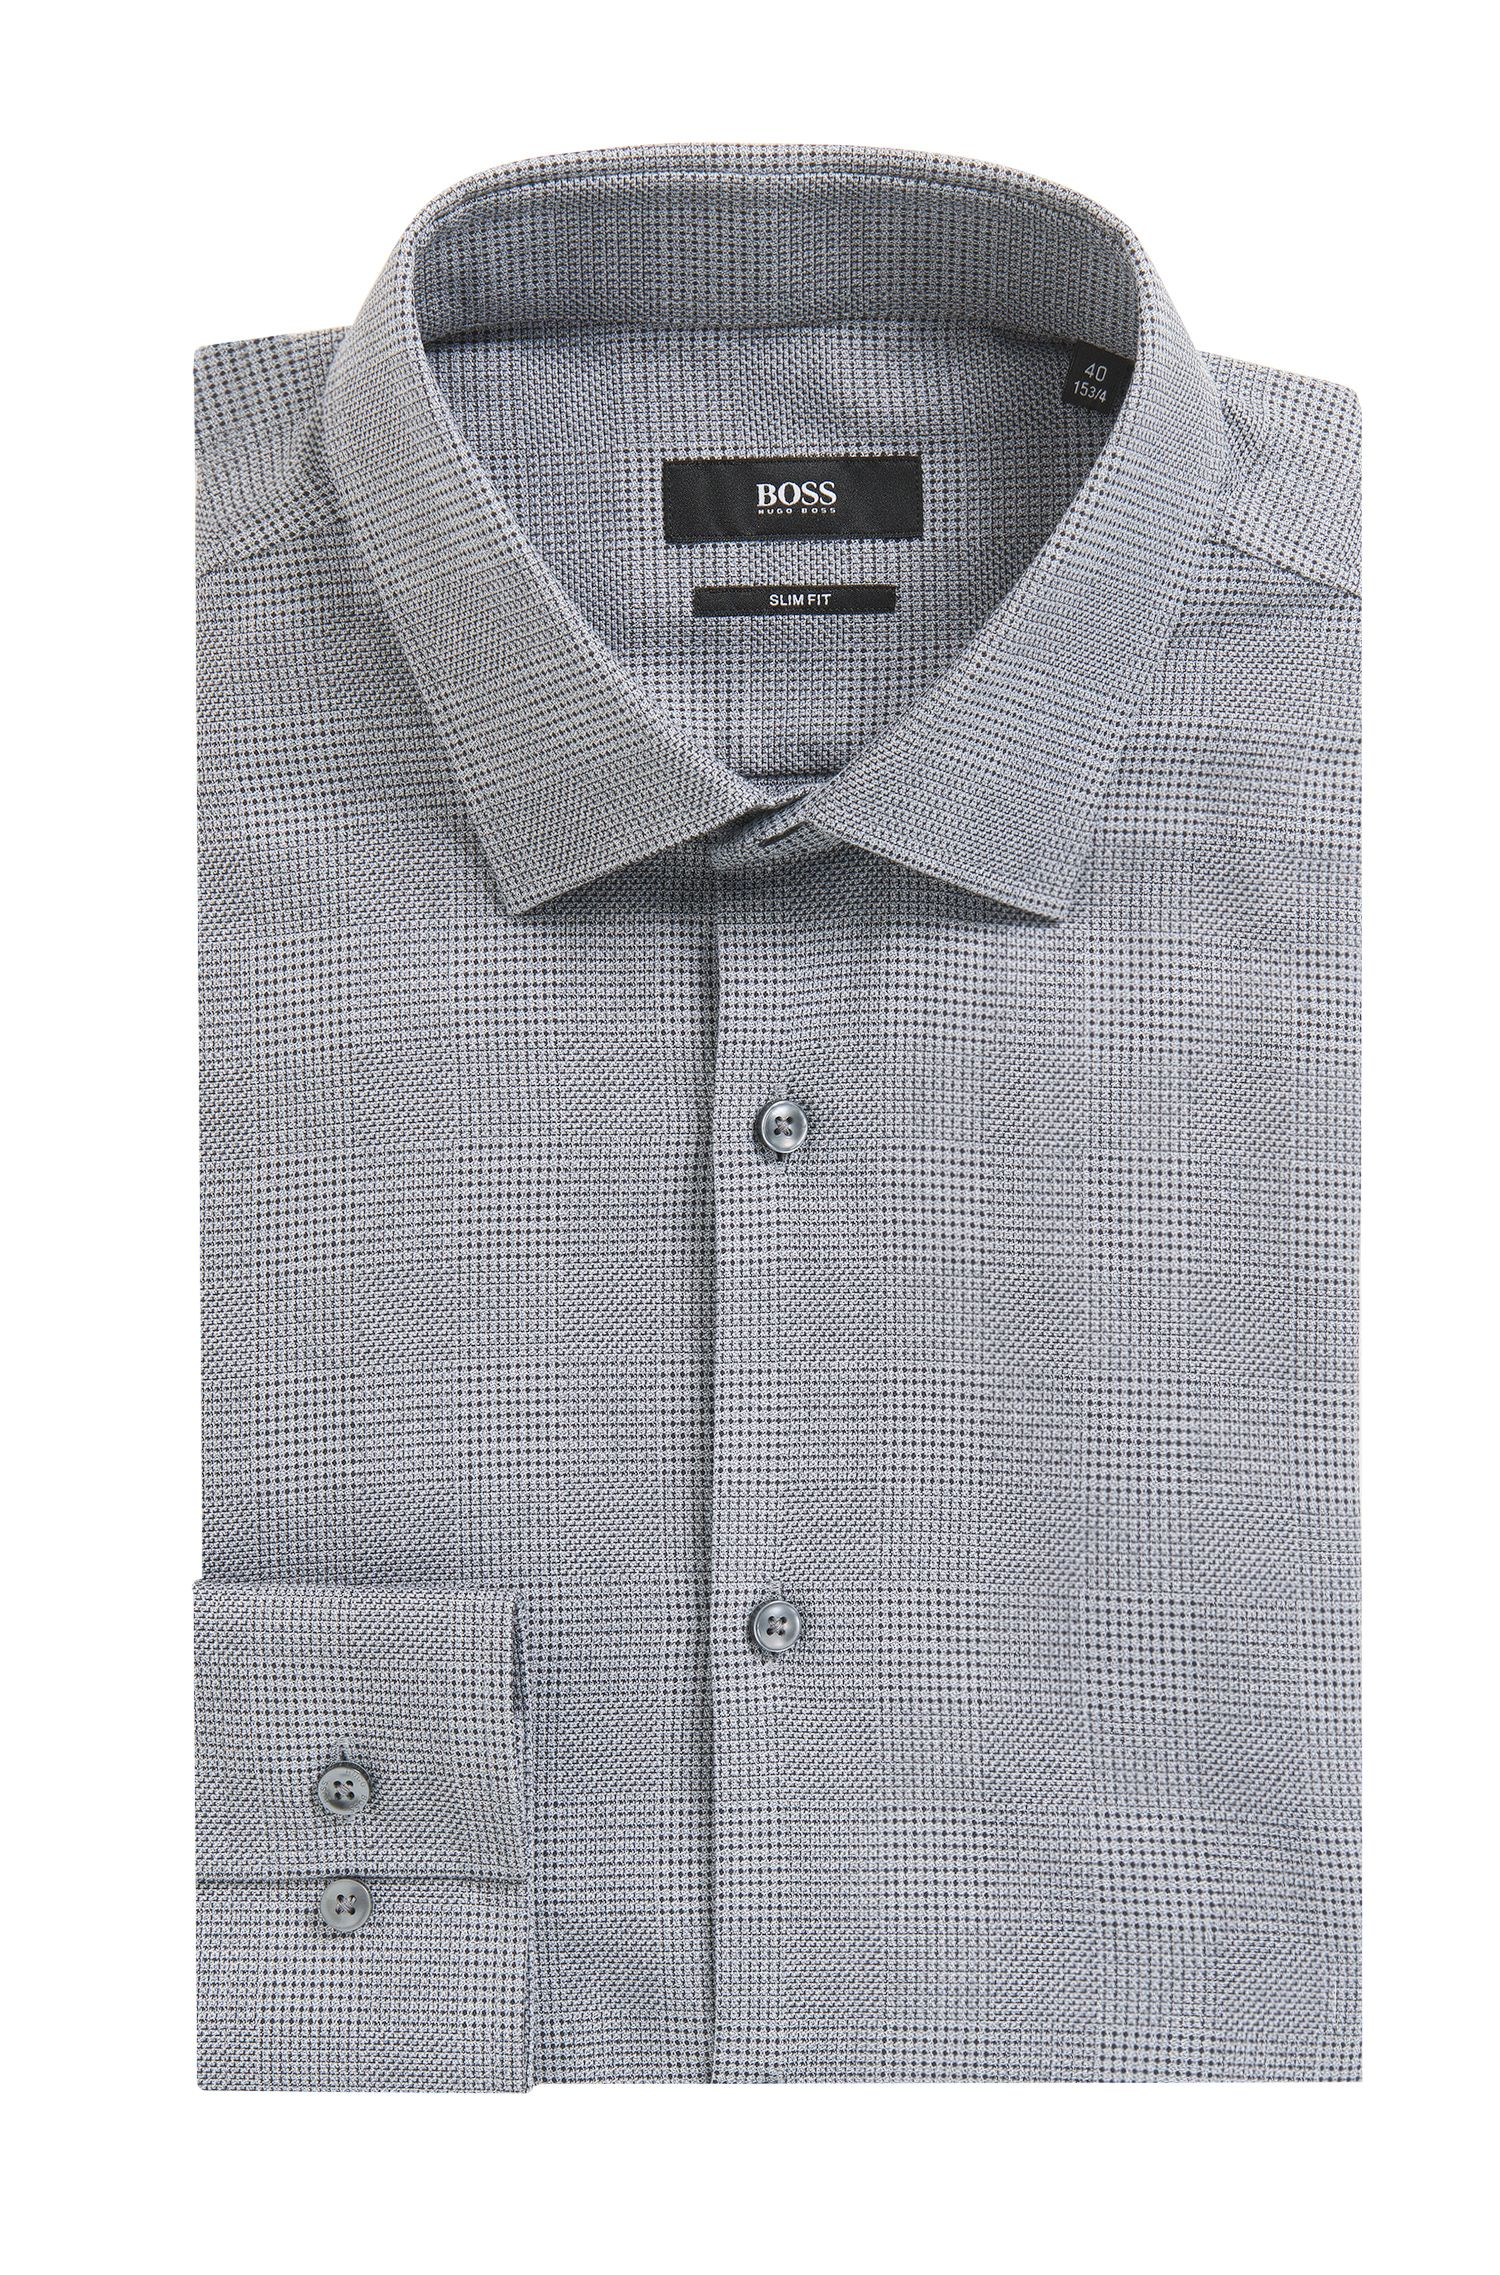 Plaid Cotton Dress Shirt, Slim Fi t| Jenno